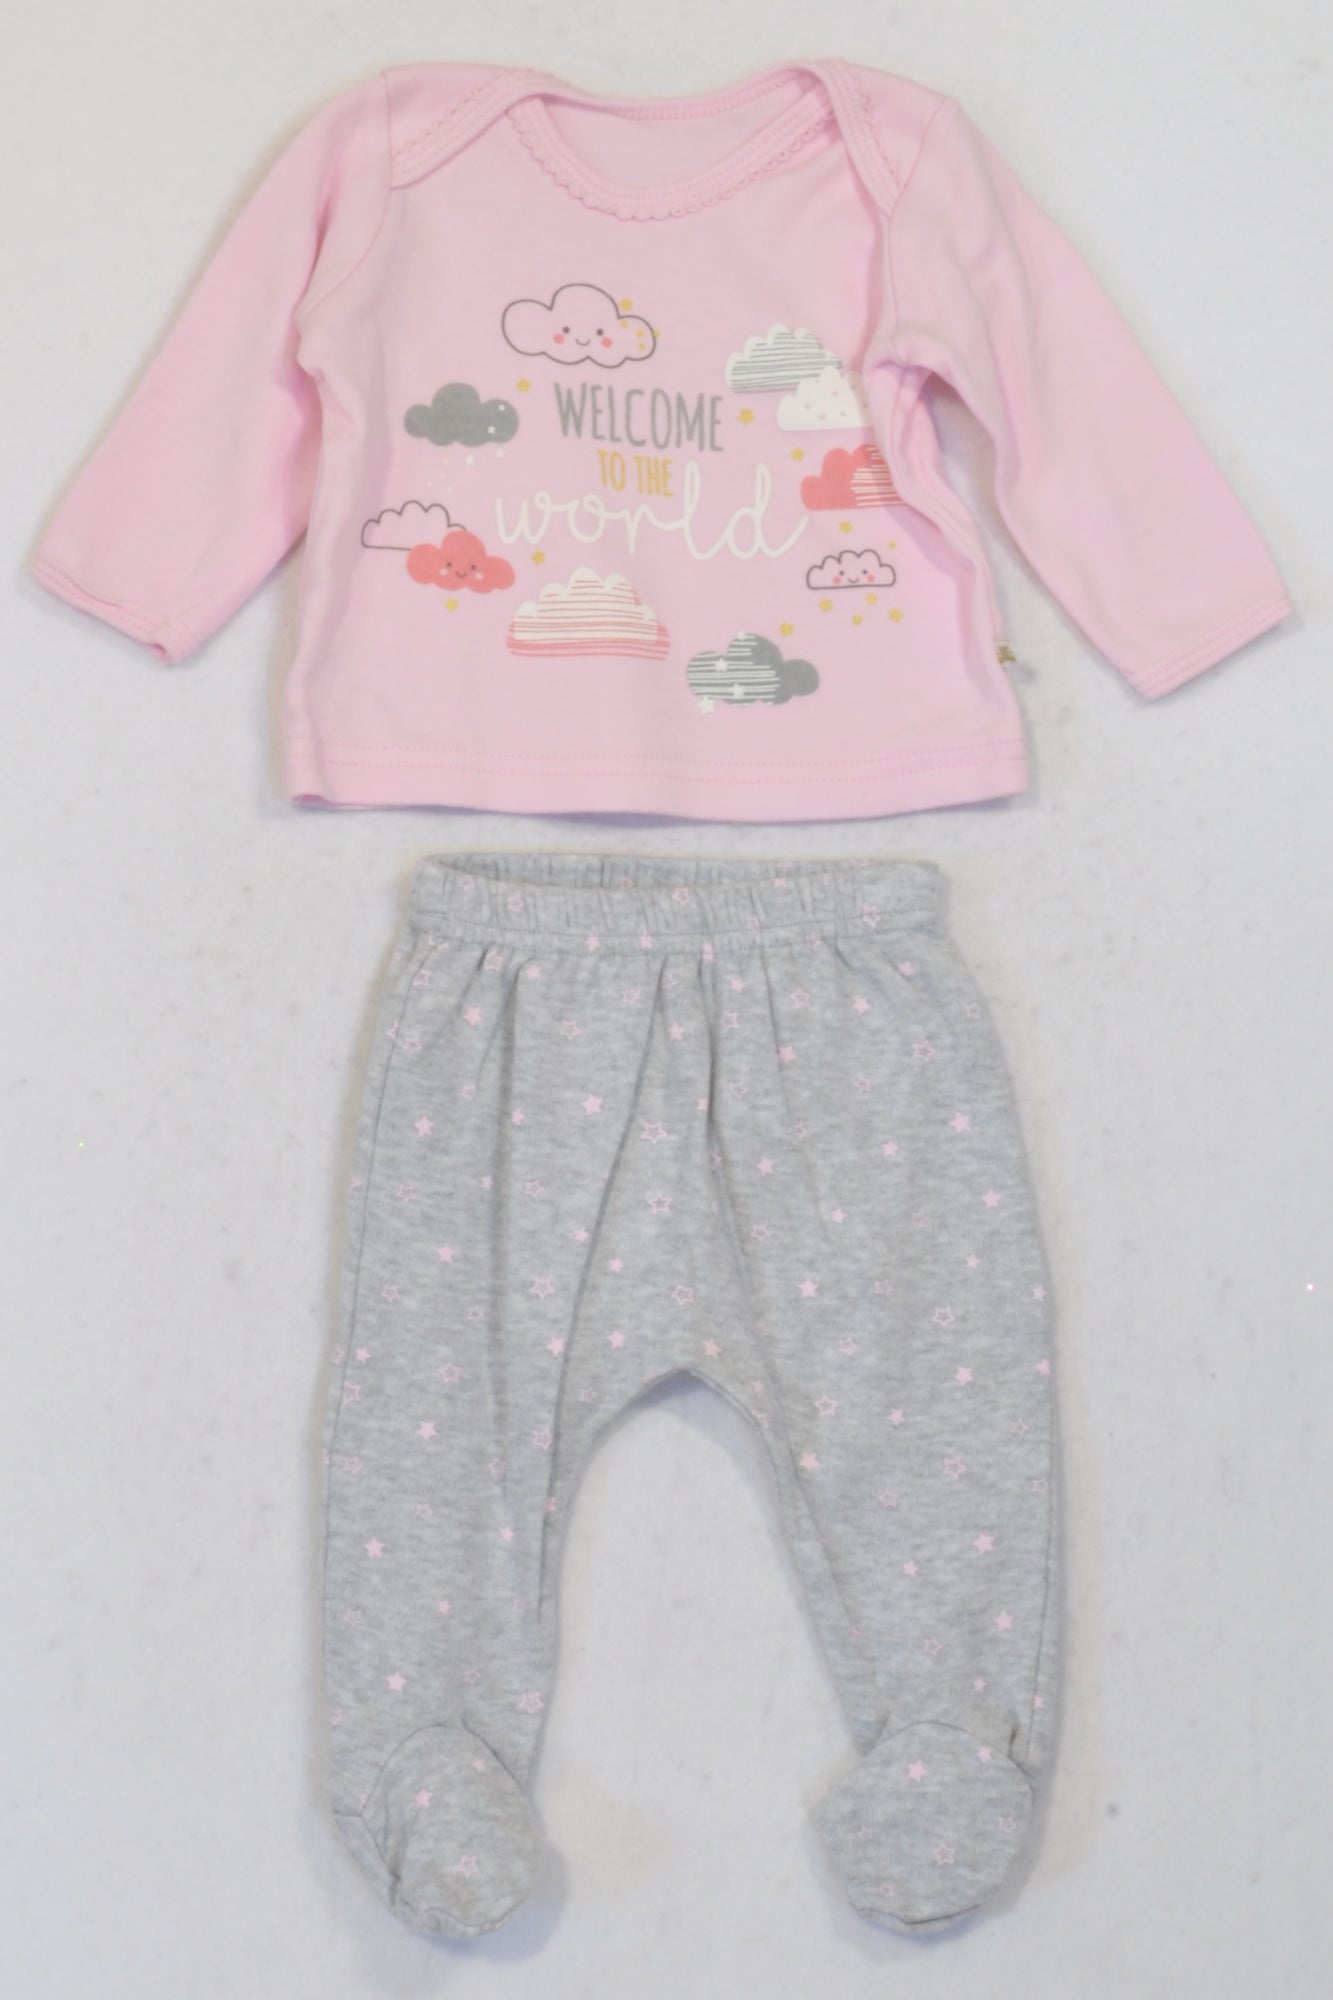 Woolworths Pink Cloud Top & Grey Footed Leggings Outfit Girls 0-3 months